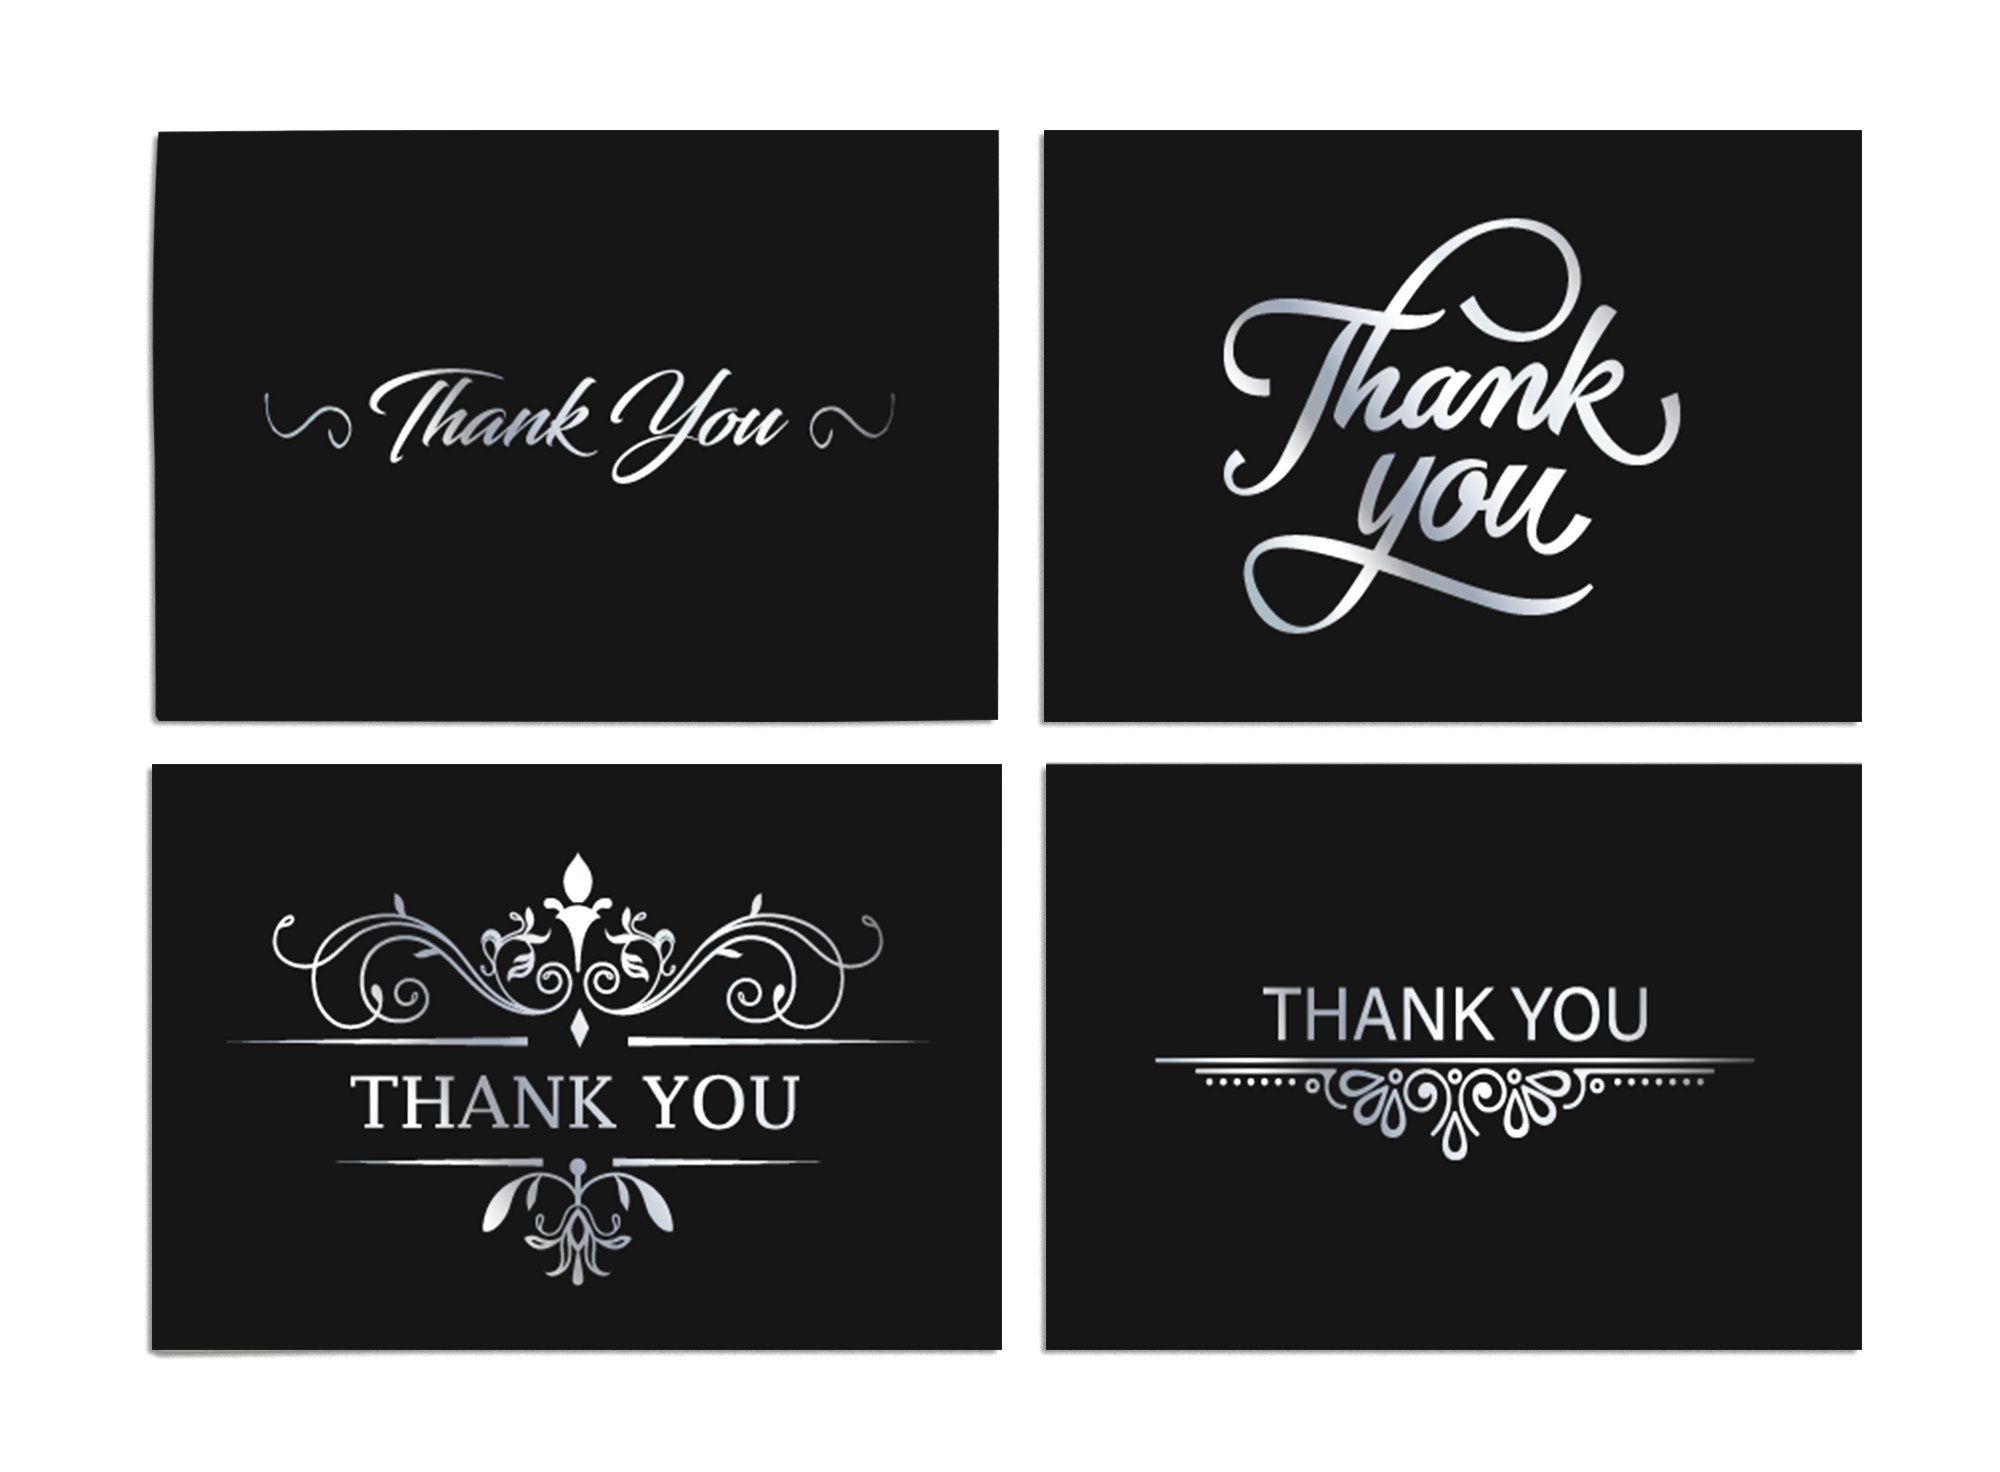 100 Thank You Cards Bulk Blank Note Cards with 4x6 Envelopes and Stickers - Black Background. Say Thank You in Style -for Casual, Business, Wedding, Graduation, Baby Shower, Christmas and Funerals.